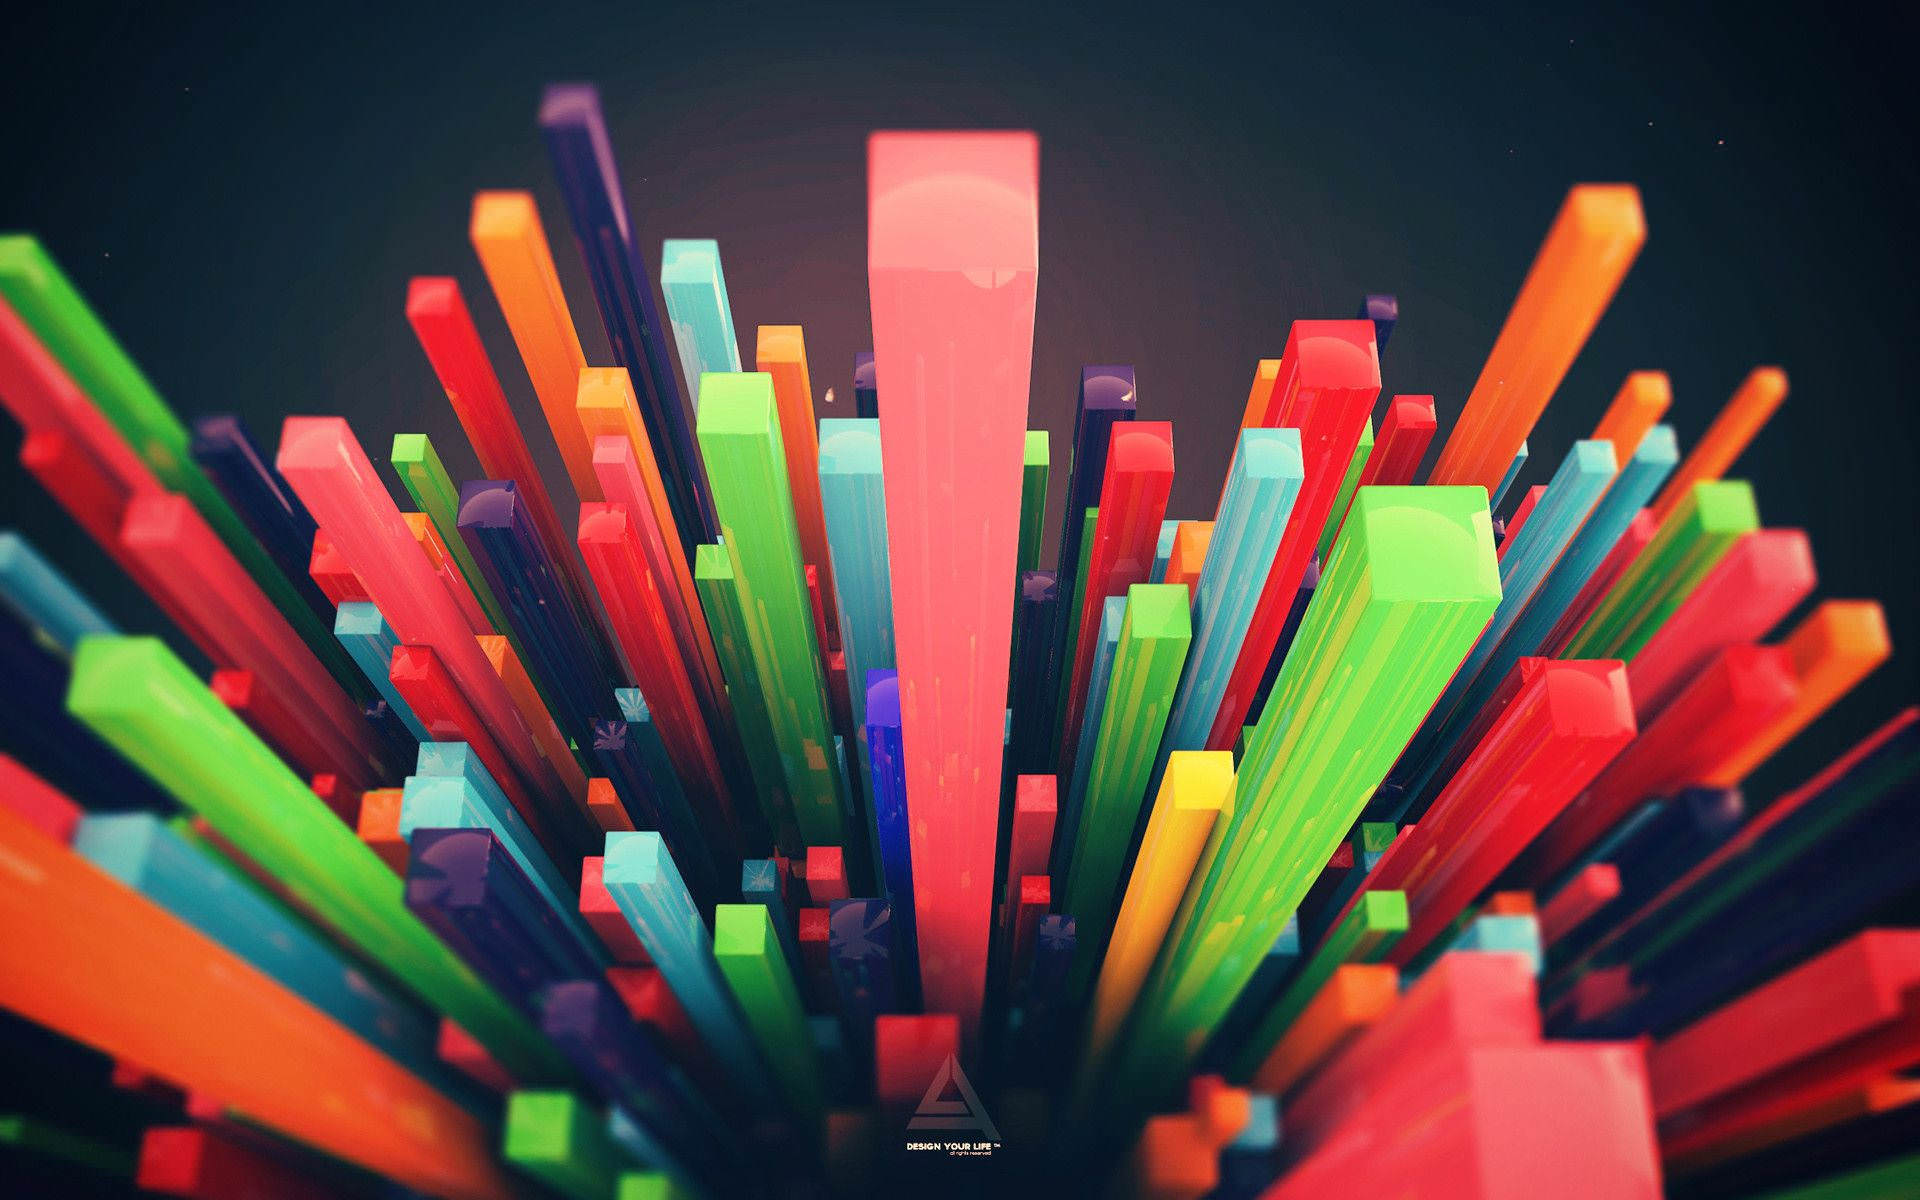 Colorful 3D Artistic Wallpaper